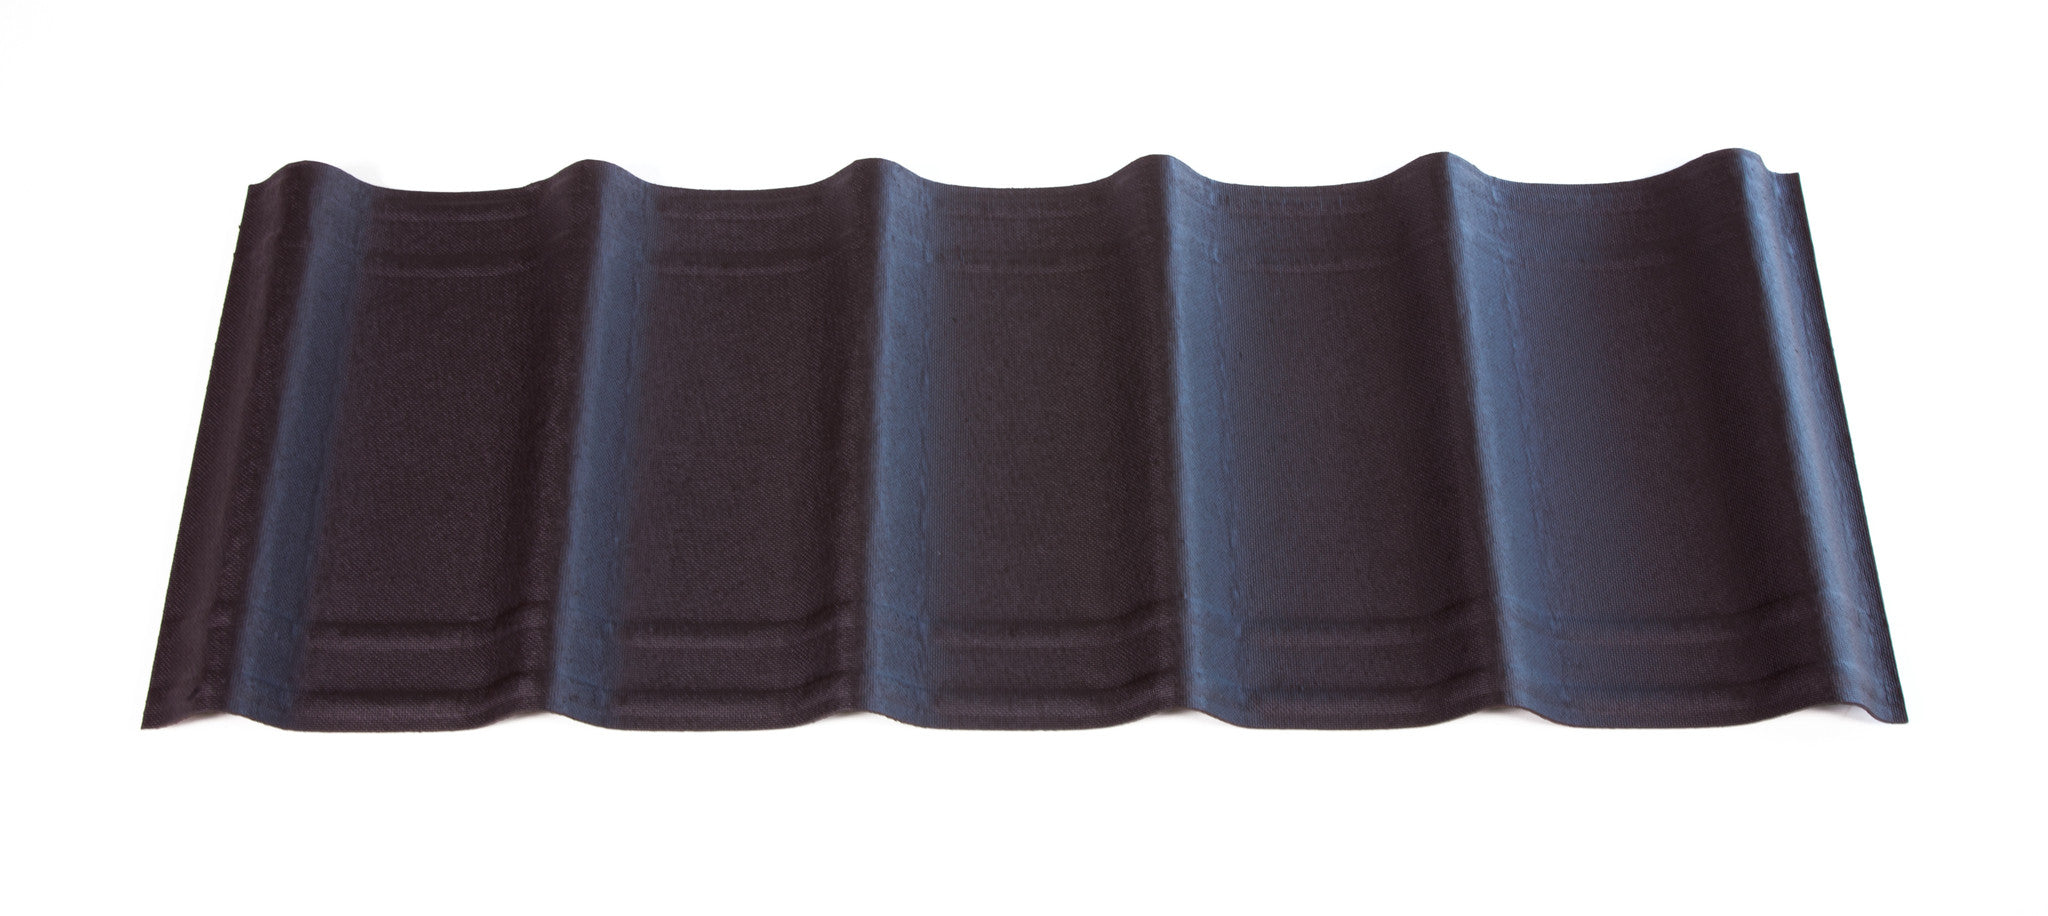 ONDUVILLA Shingles 1 Pack of 10 Shingles - Ebony Black